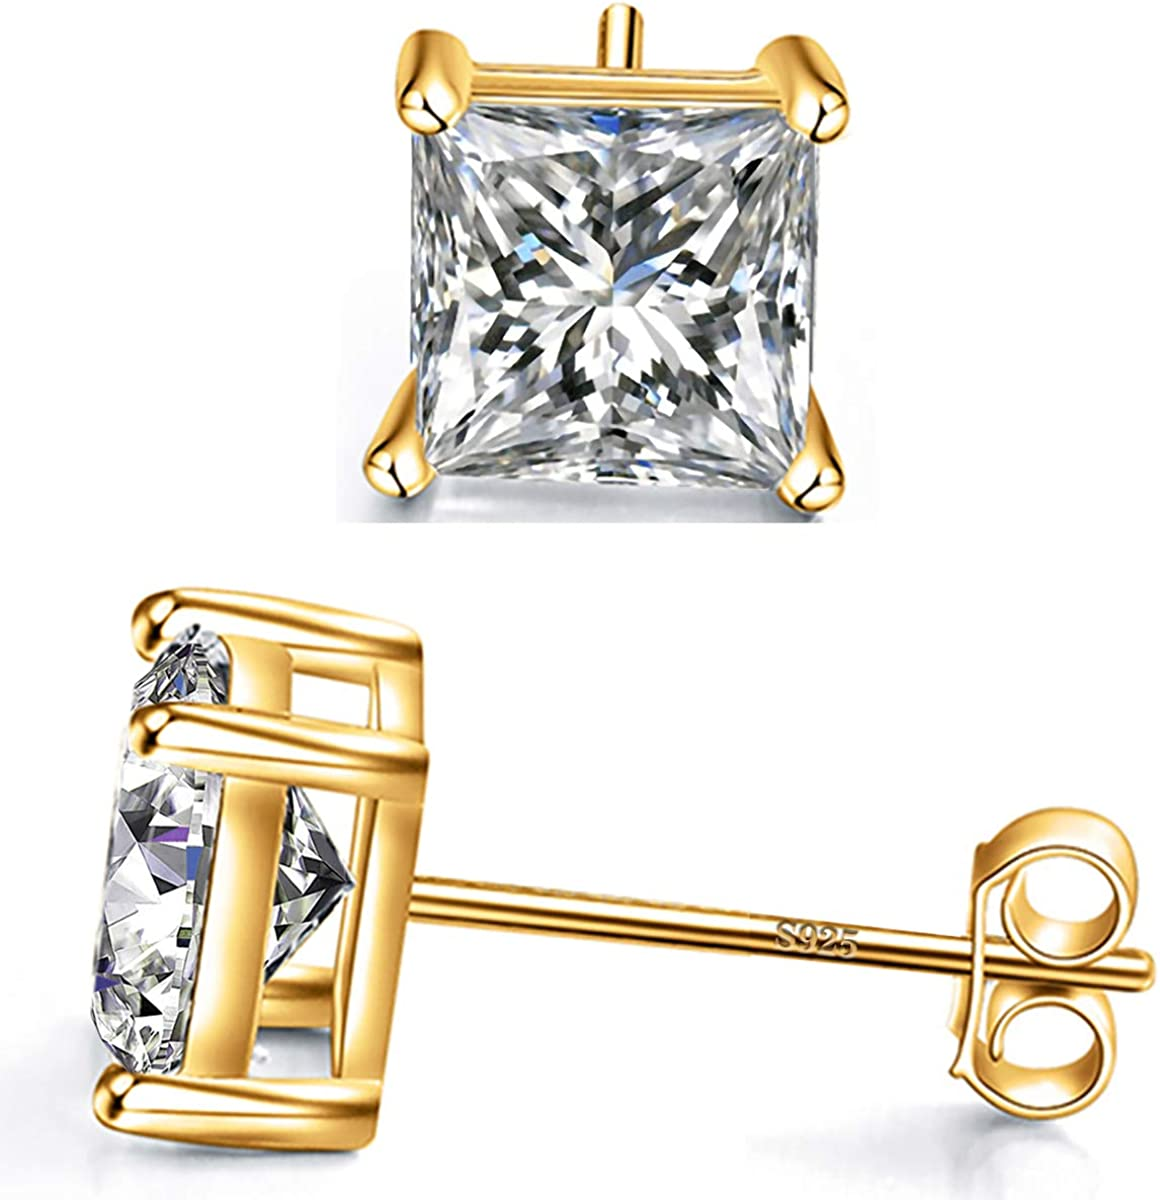 925 Sterling Silver Stud Earrings 4 Cut Princess lowest shipfree price Square Prong Cu